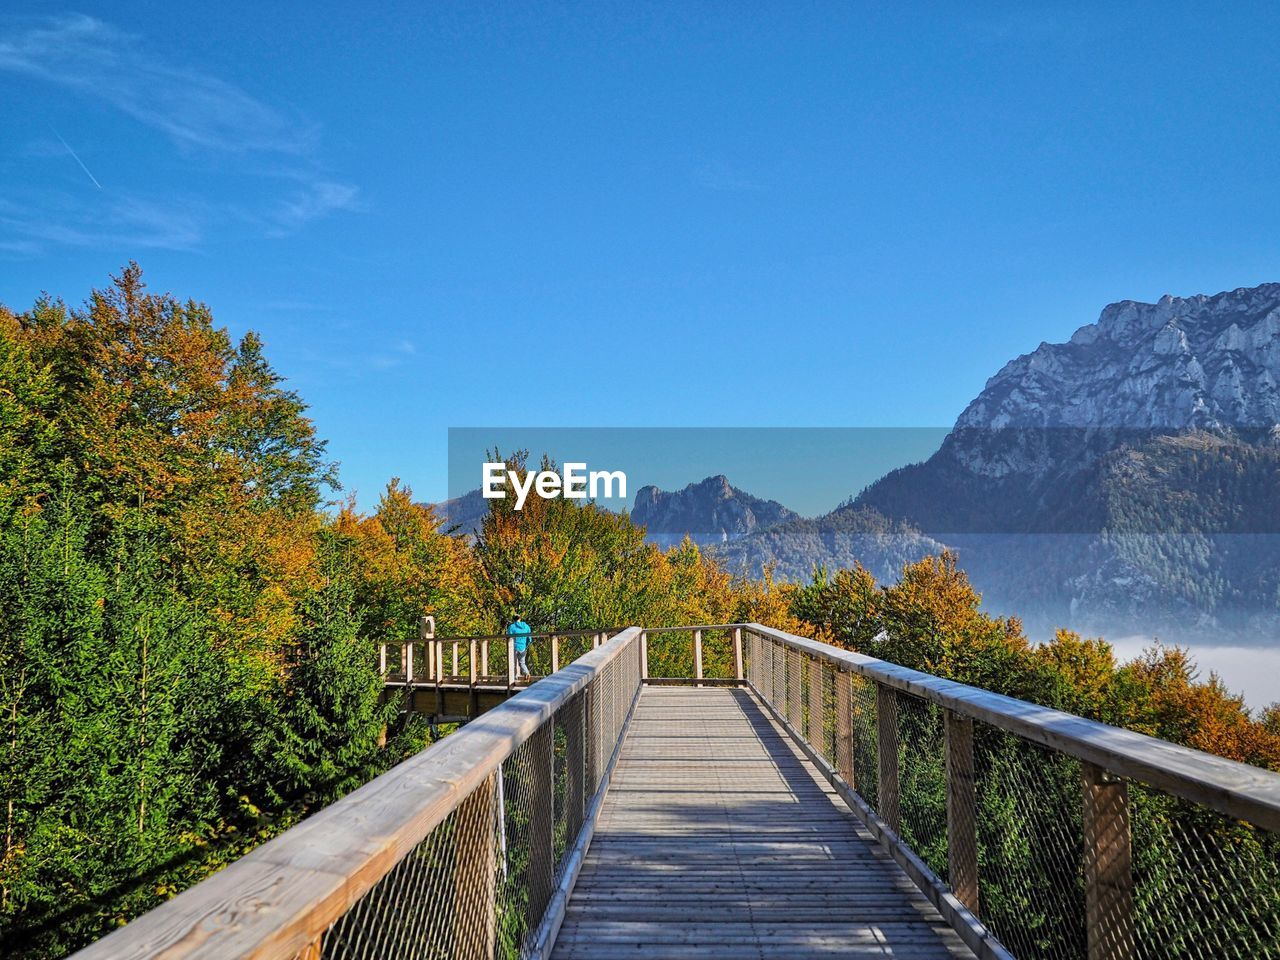 mountain, sky, direction, the way forward, railing, beauty in nature, plant, scenics - nature, nature, tree, wood - material, tranquility, blue, tranquil scene, day, footpath, no people, connection, outdoors, architecture, footbridge, wood paneling